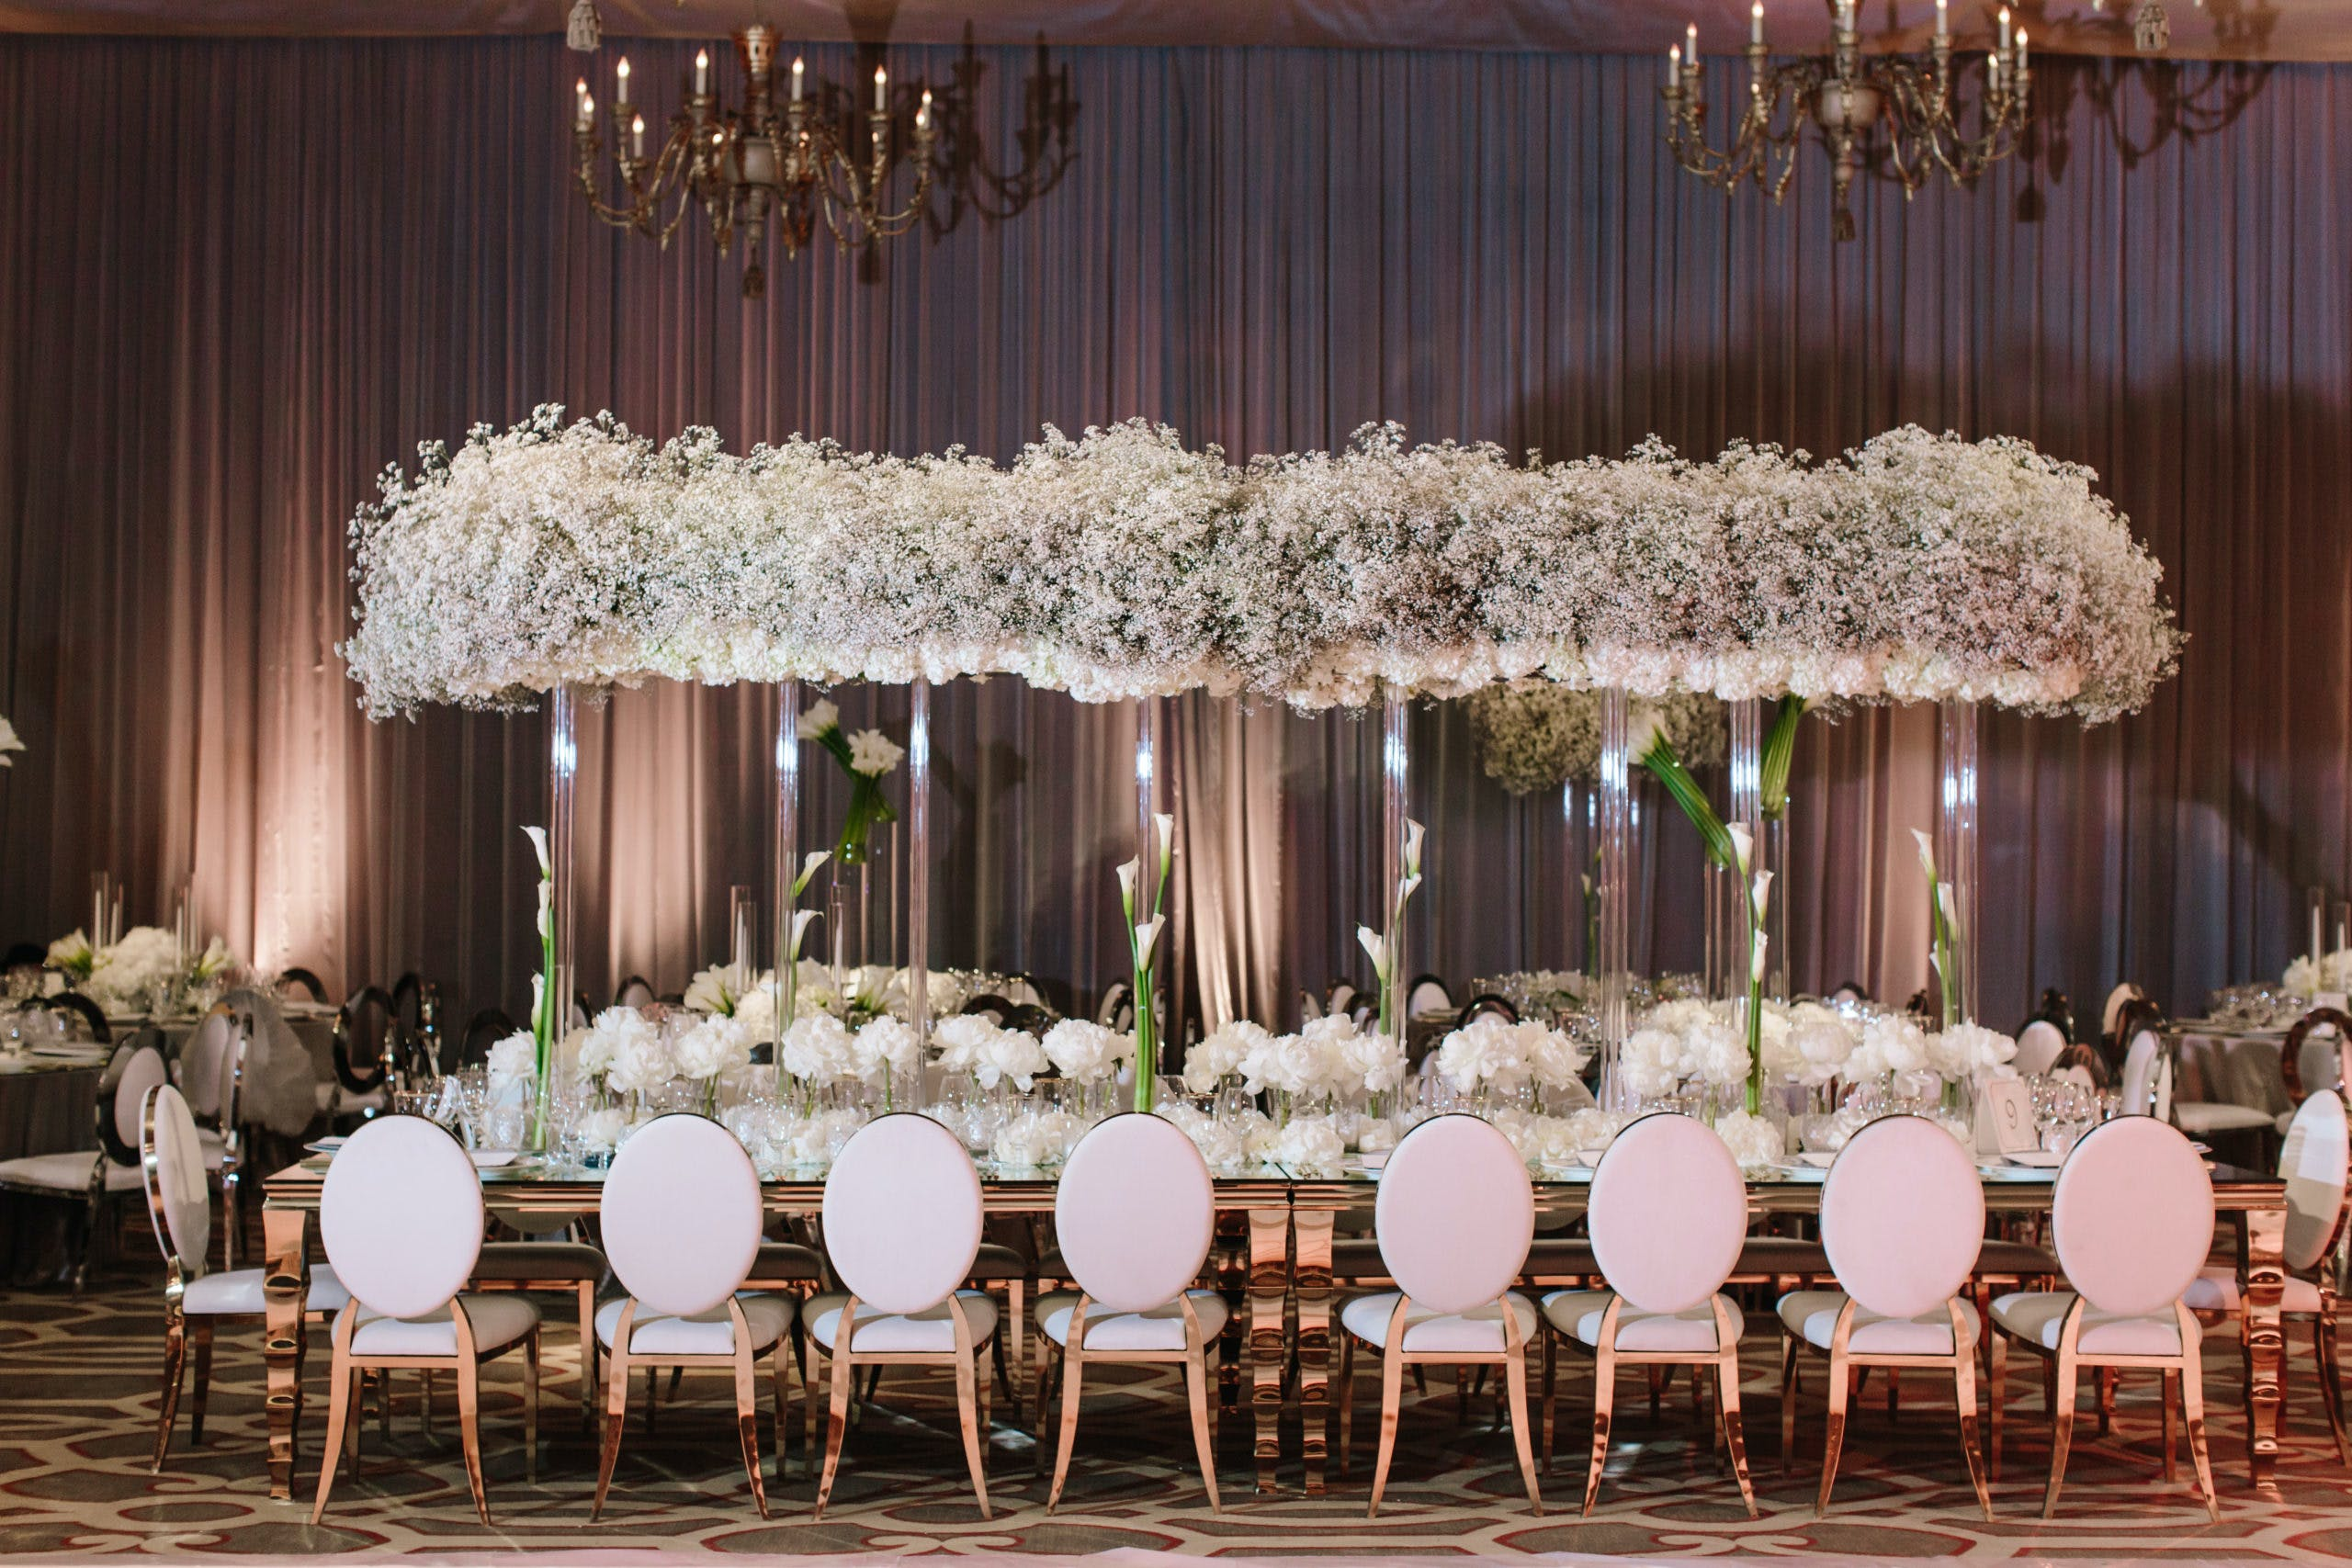 Modern, All-White Wedding Tablescape with Elevated Baby's Breath Centerpieces   PartySlate